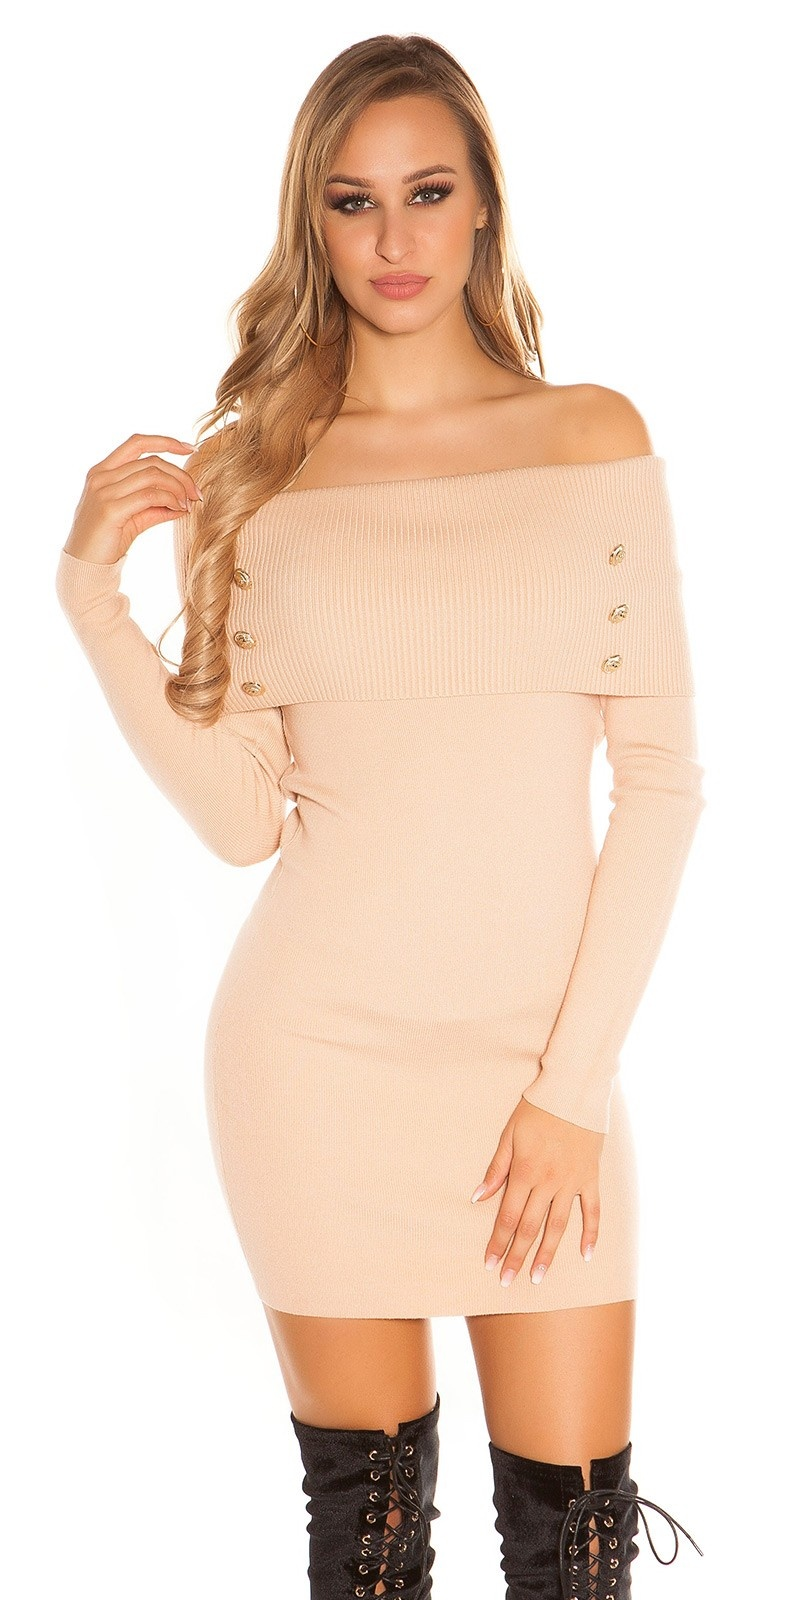 Sexy knit dress carmen neck & deco buttons Beige